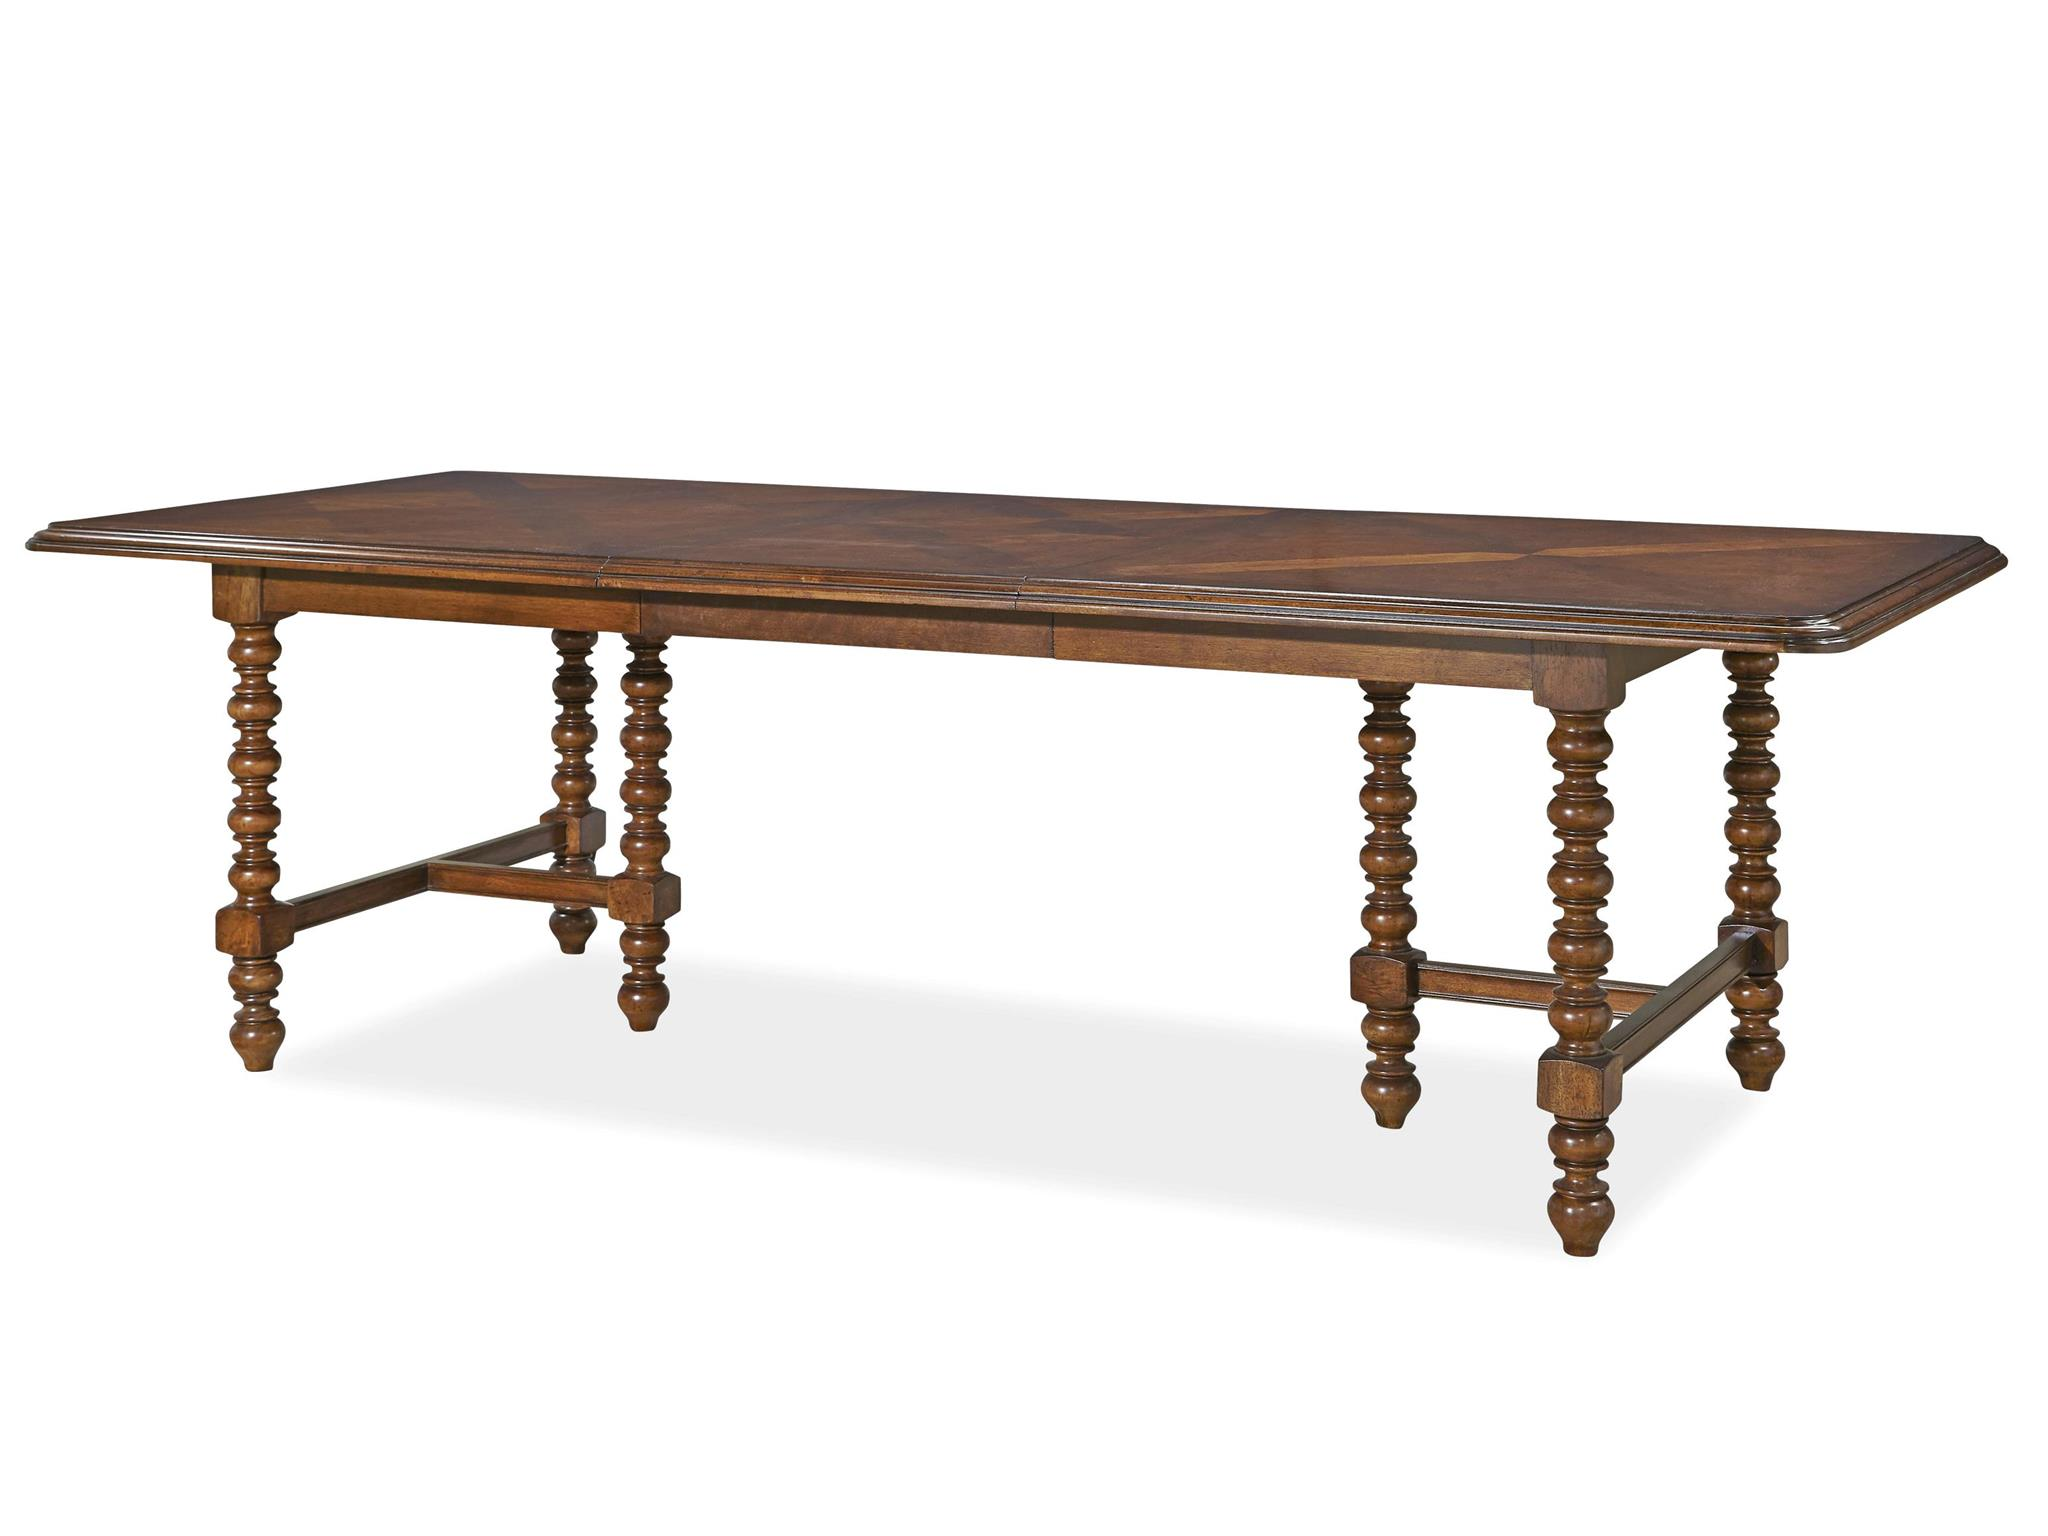 Pictures Of Dinner Tables universal furniture | dogwood-paula deen home | dogwood dinner table